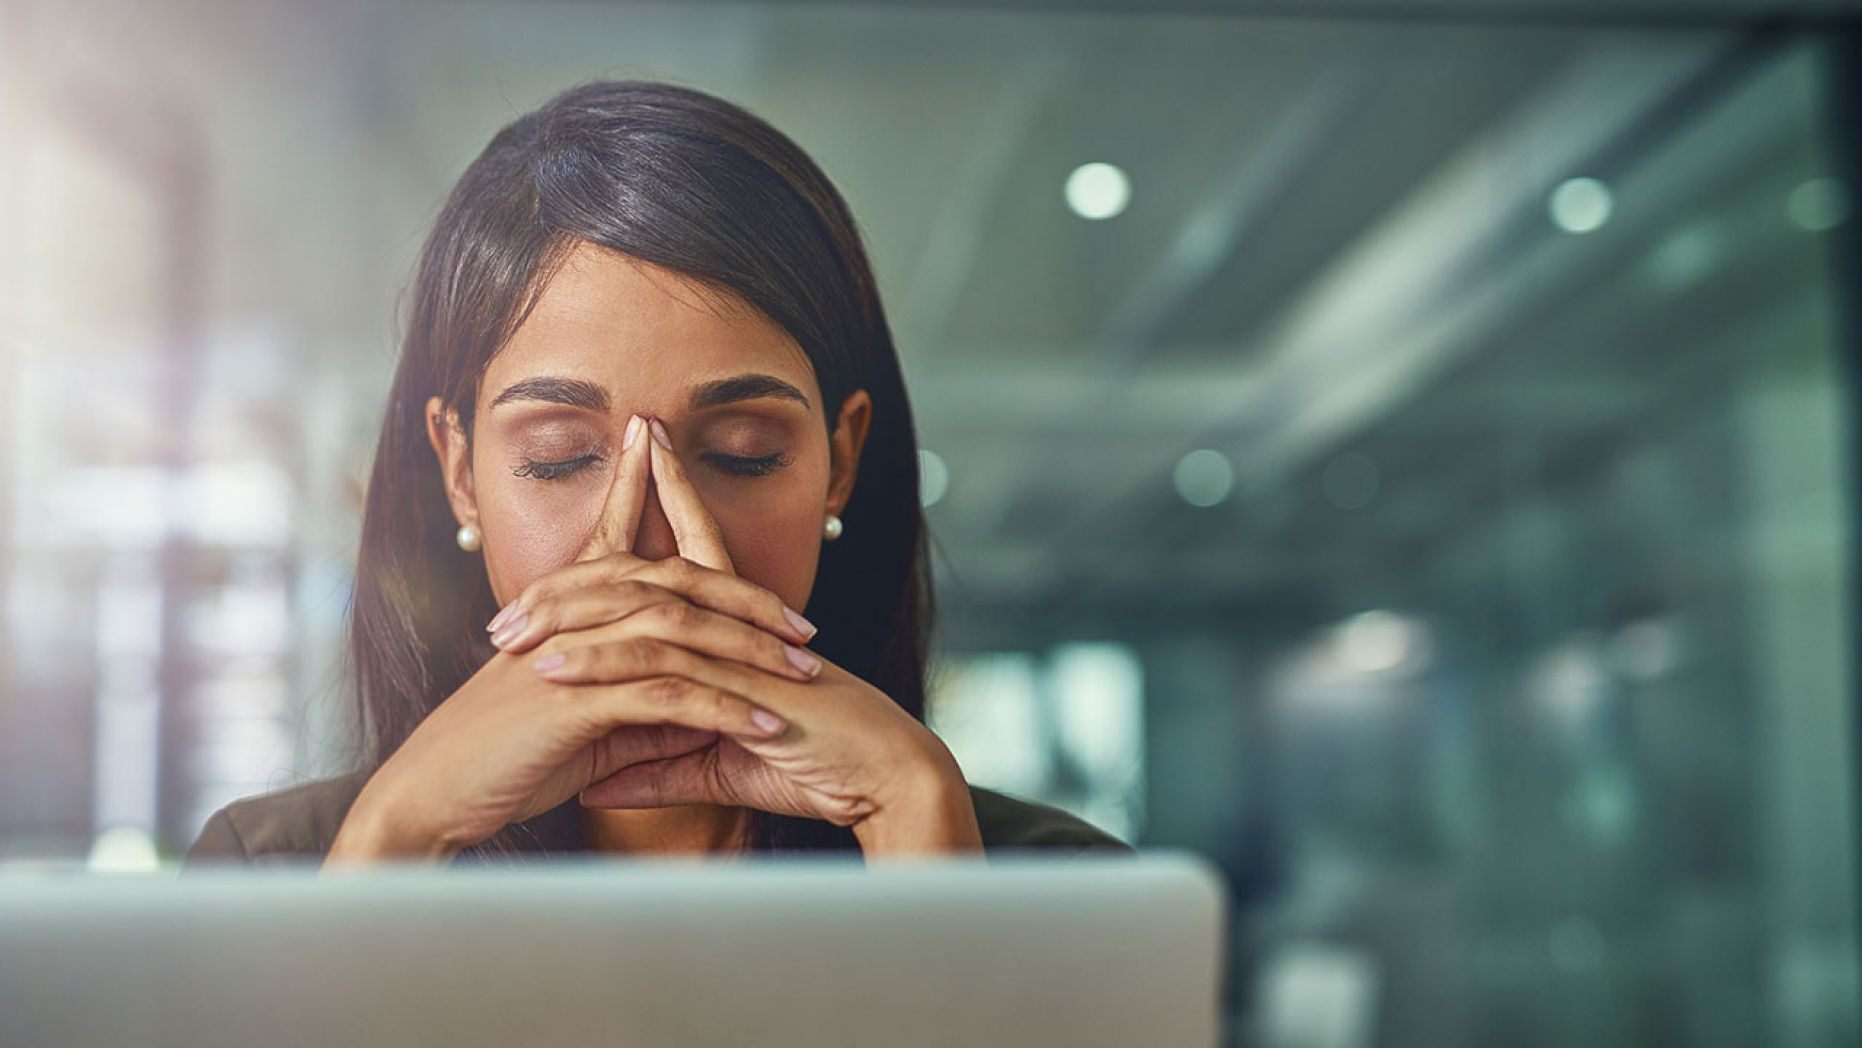 Westlake Legal Group stressed_istock Burnout linked to potentially lethal heart condition New York Post Hannah Frishberg fox-news/health/heart-health fox-news/health/healthy-living/womens-health fnc/health fnc article 9663fcb8-3f6c-54de-b881-9fd9571a759d